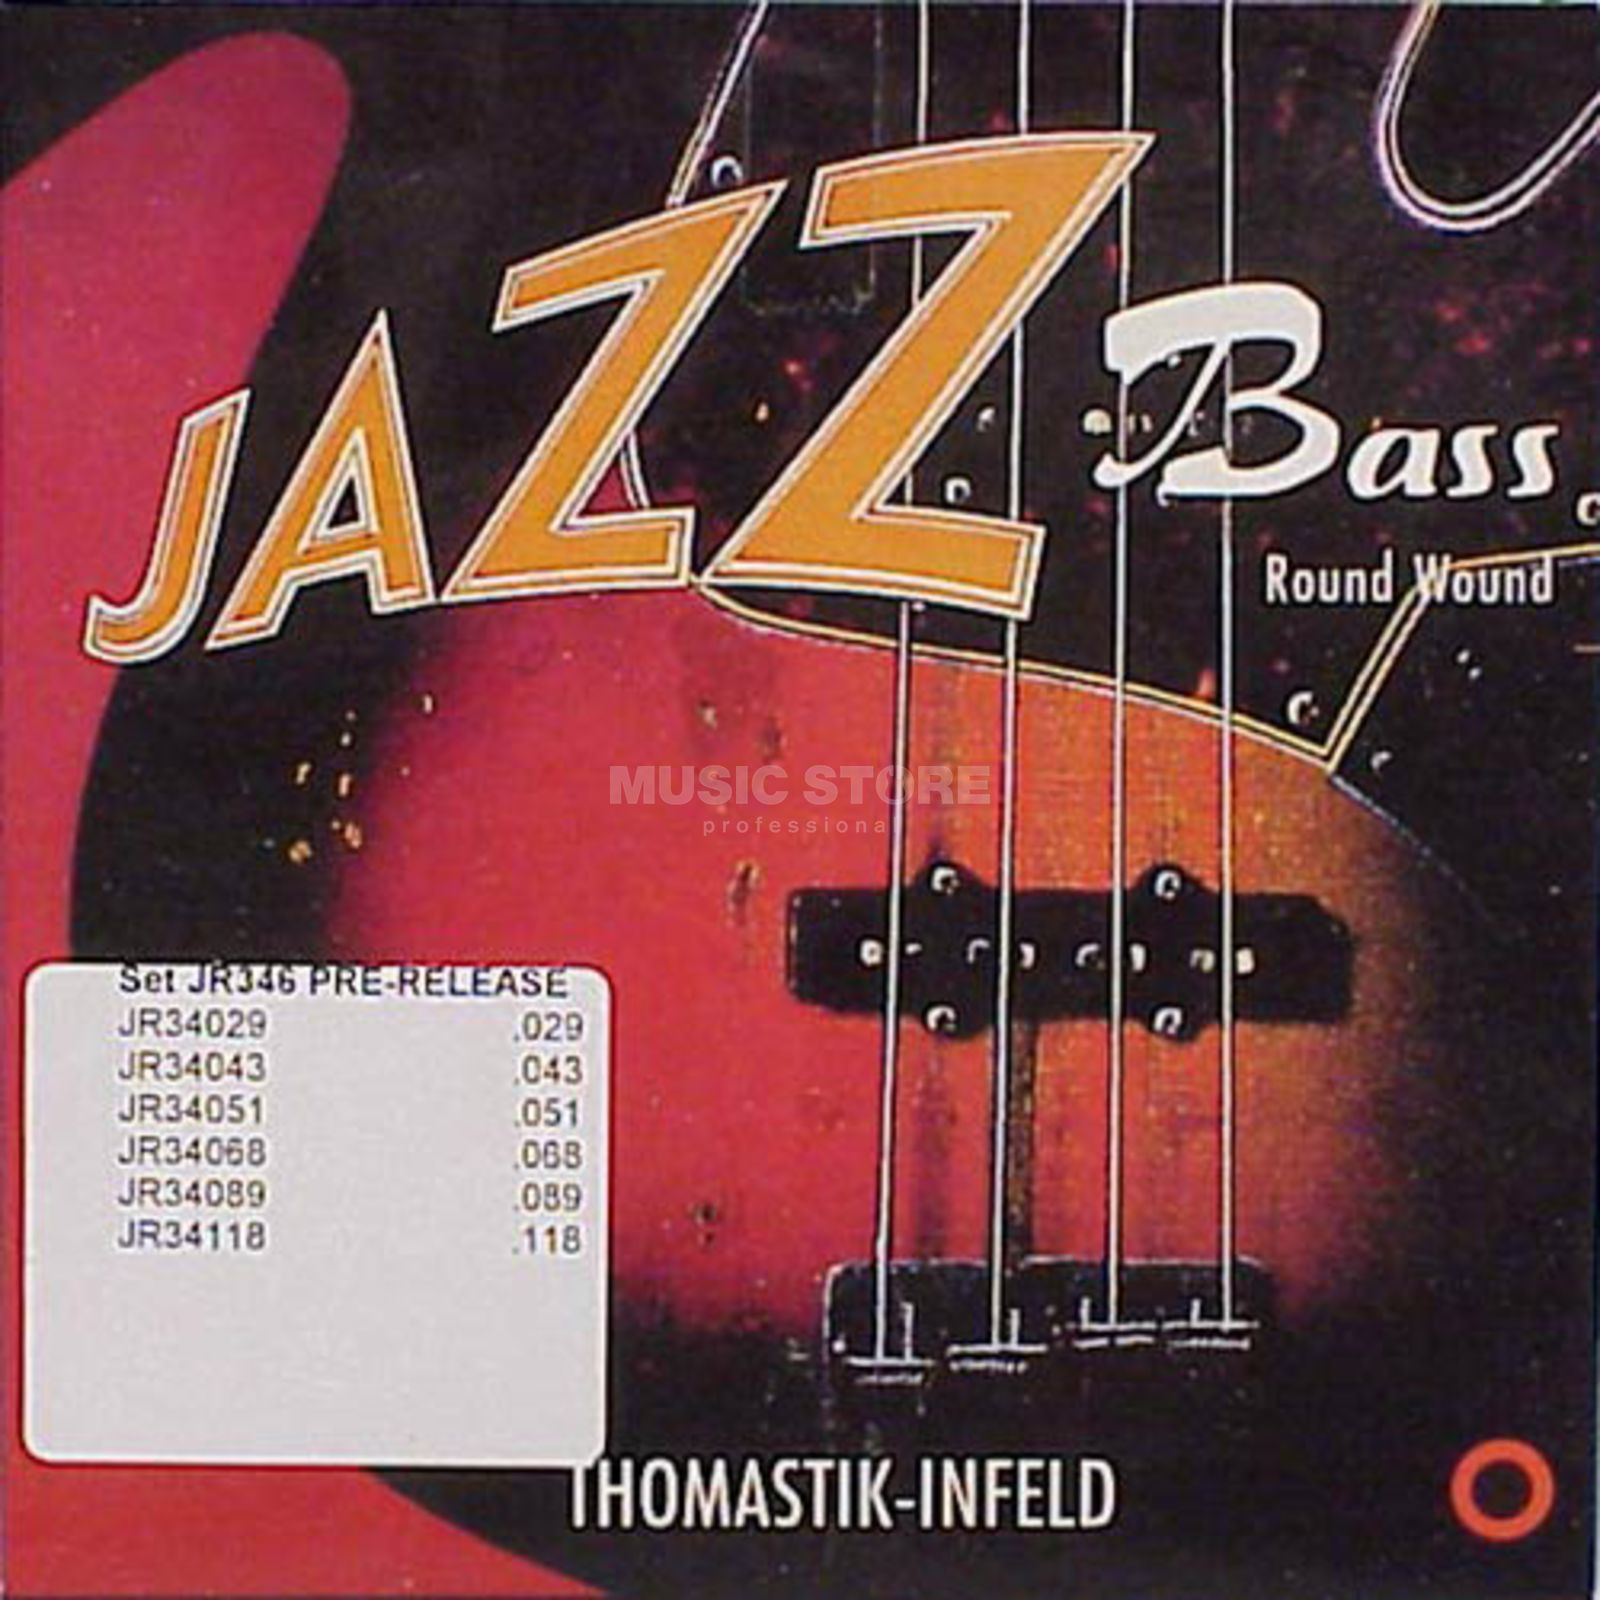 Thomastik 6 Bass Strings JR 346 29-118 Nickel Round Wound Product Image